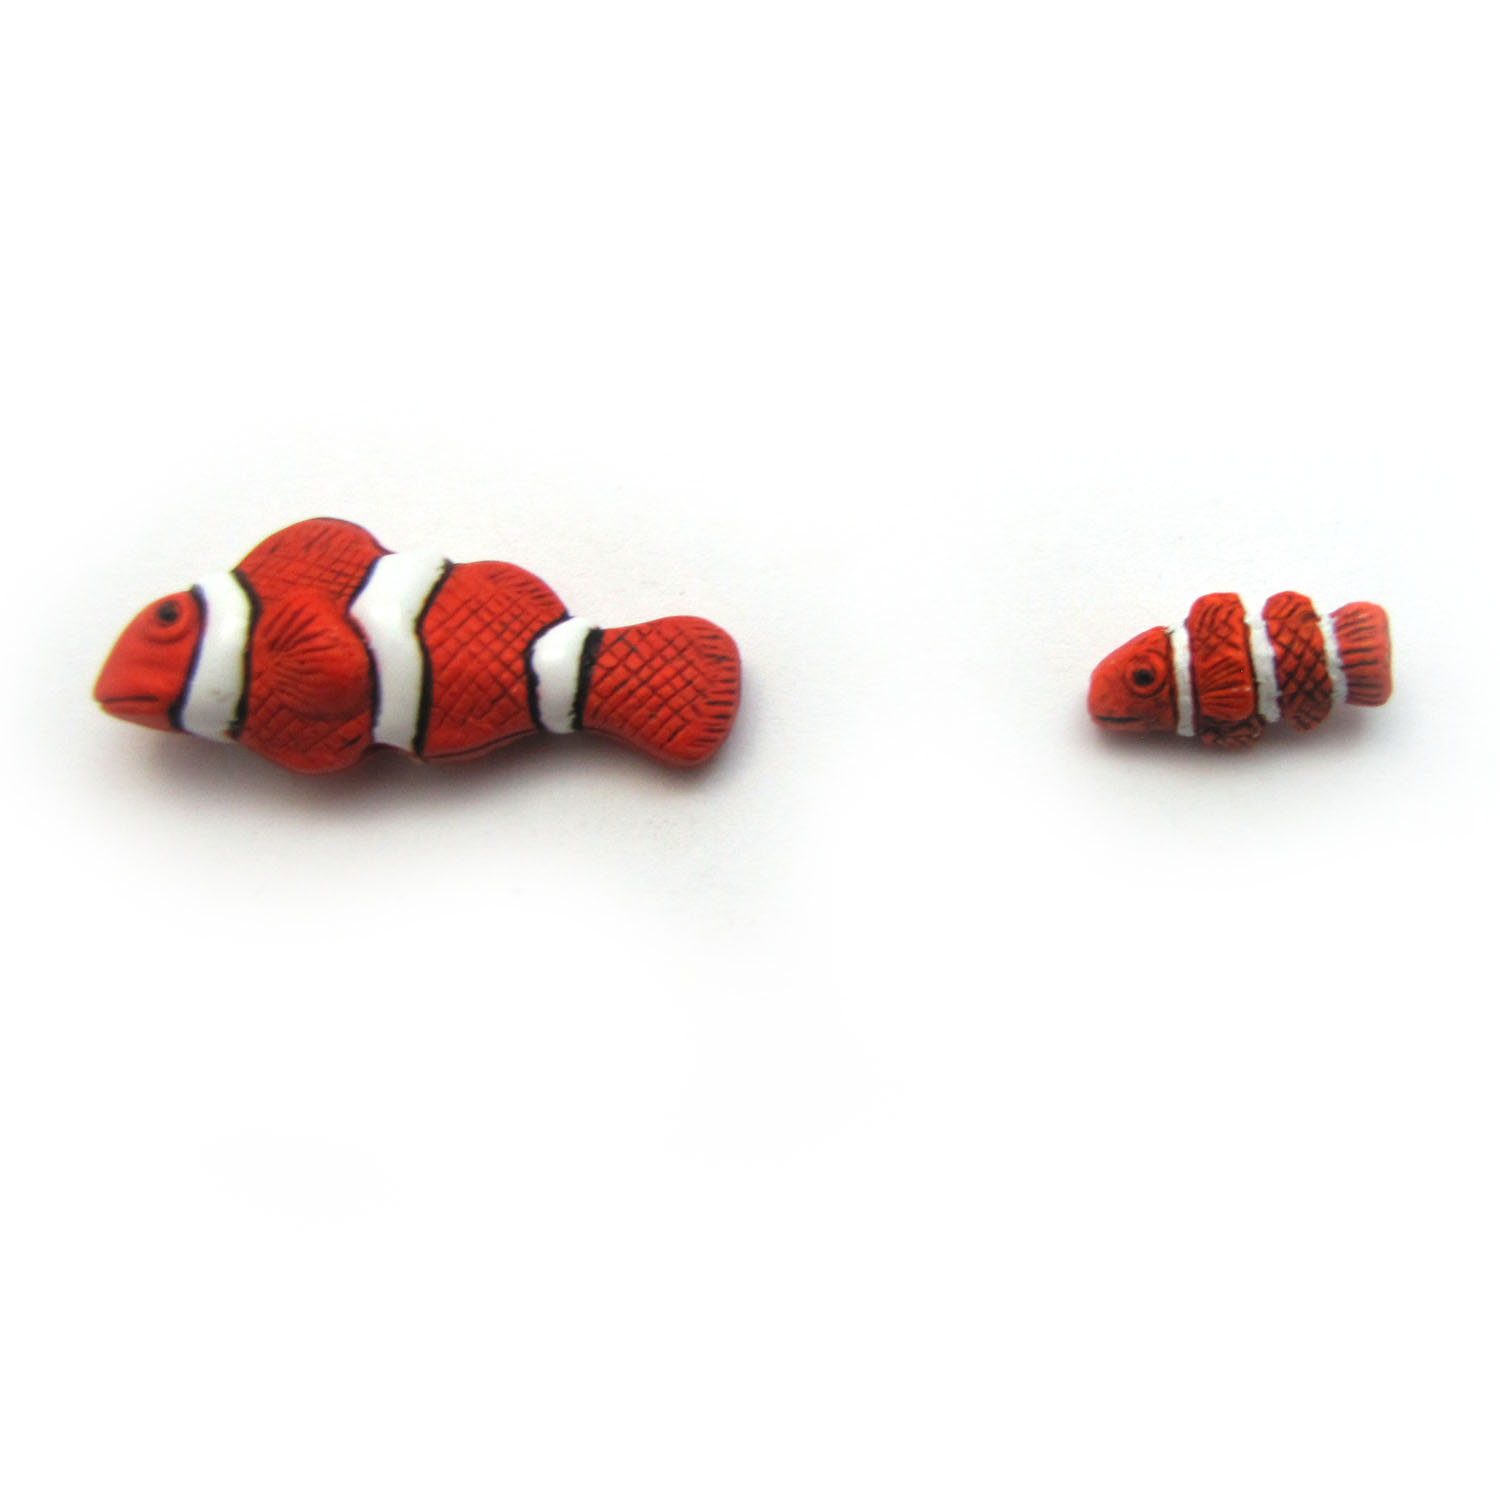 Clownfish ceramic beads large and small